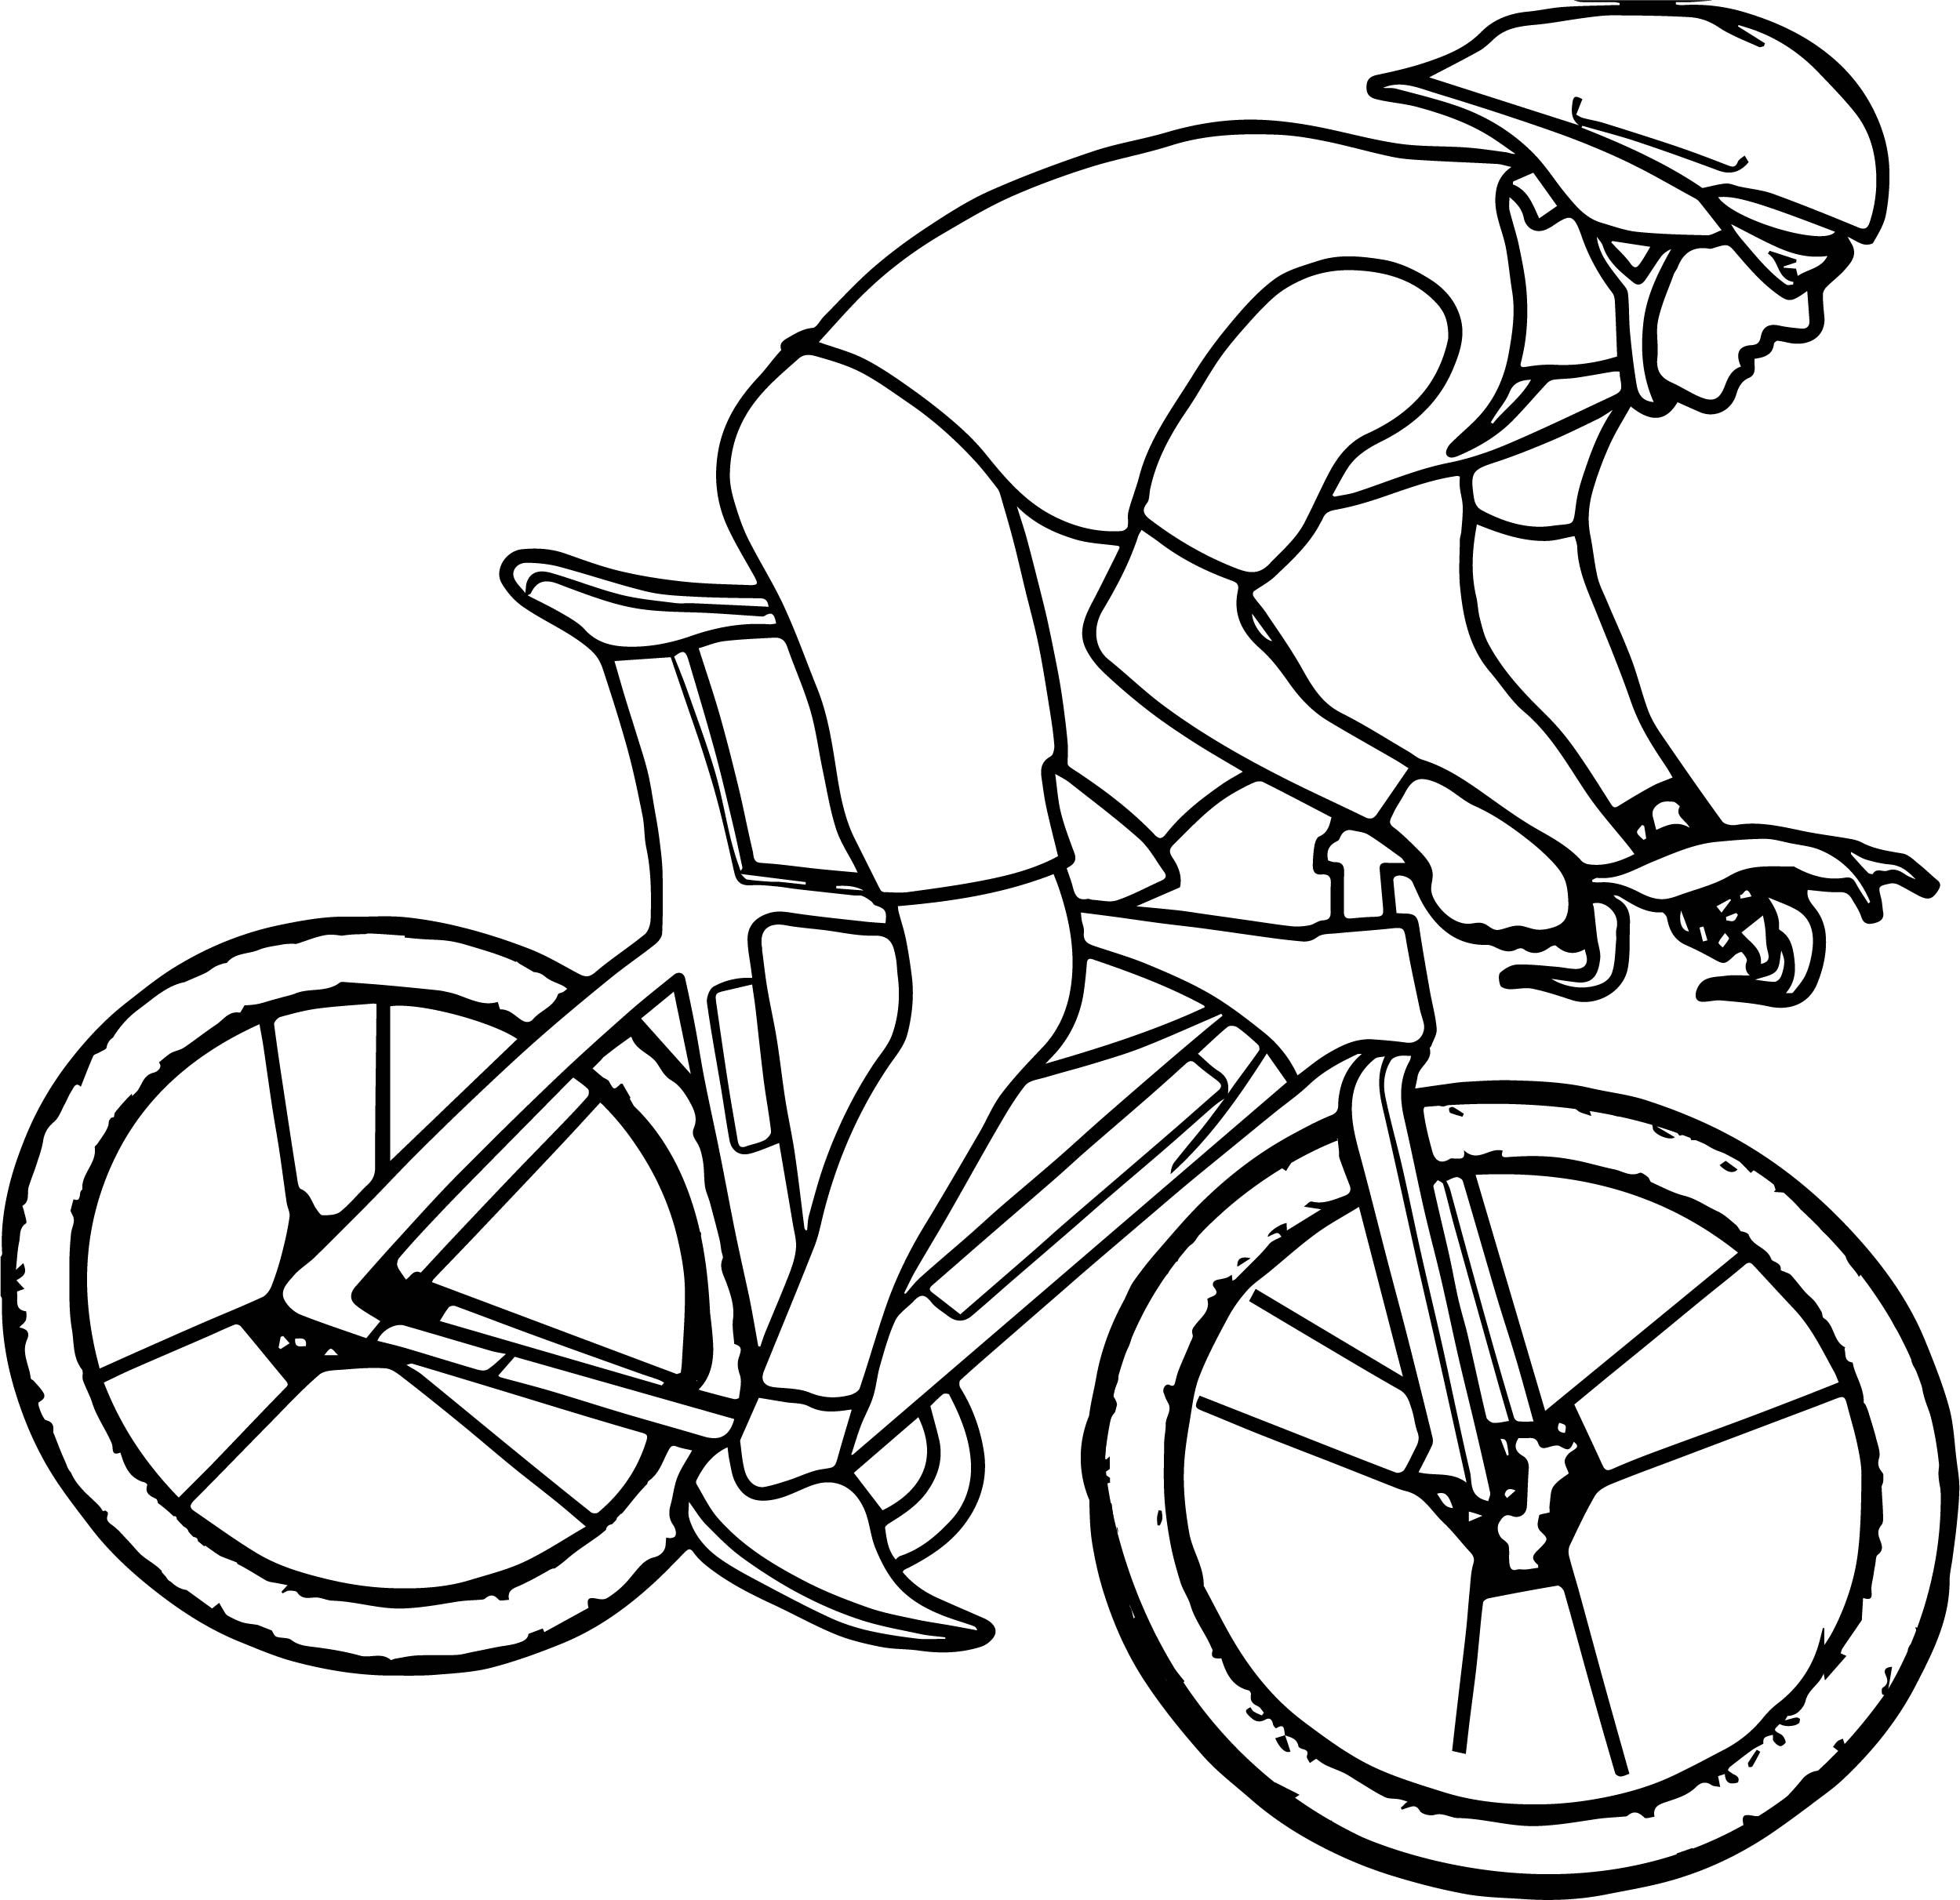 Cool Cycling Bike Coloring Page